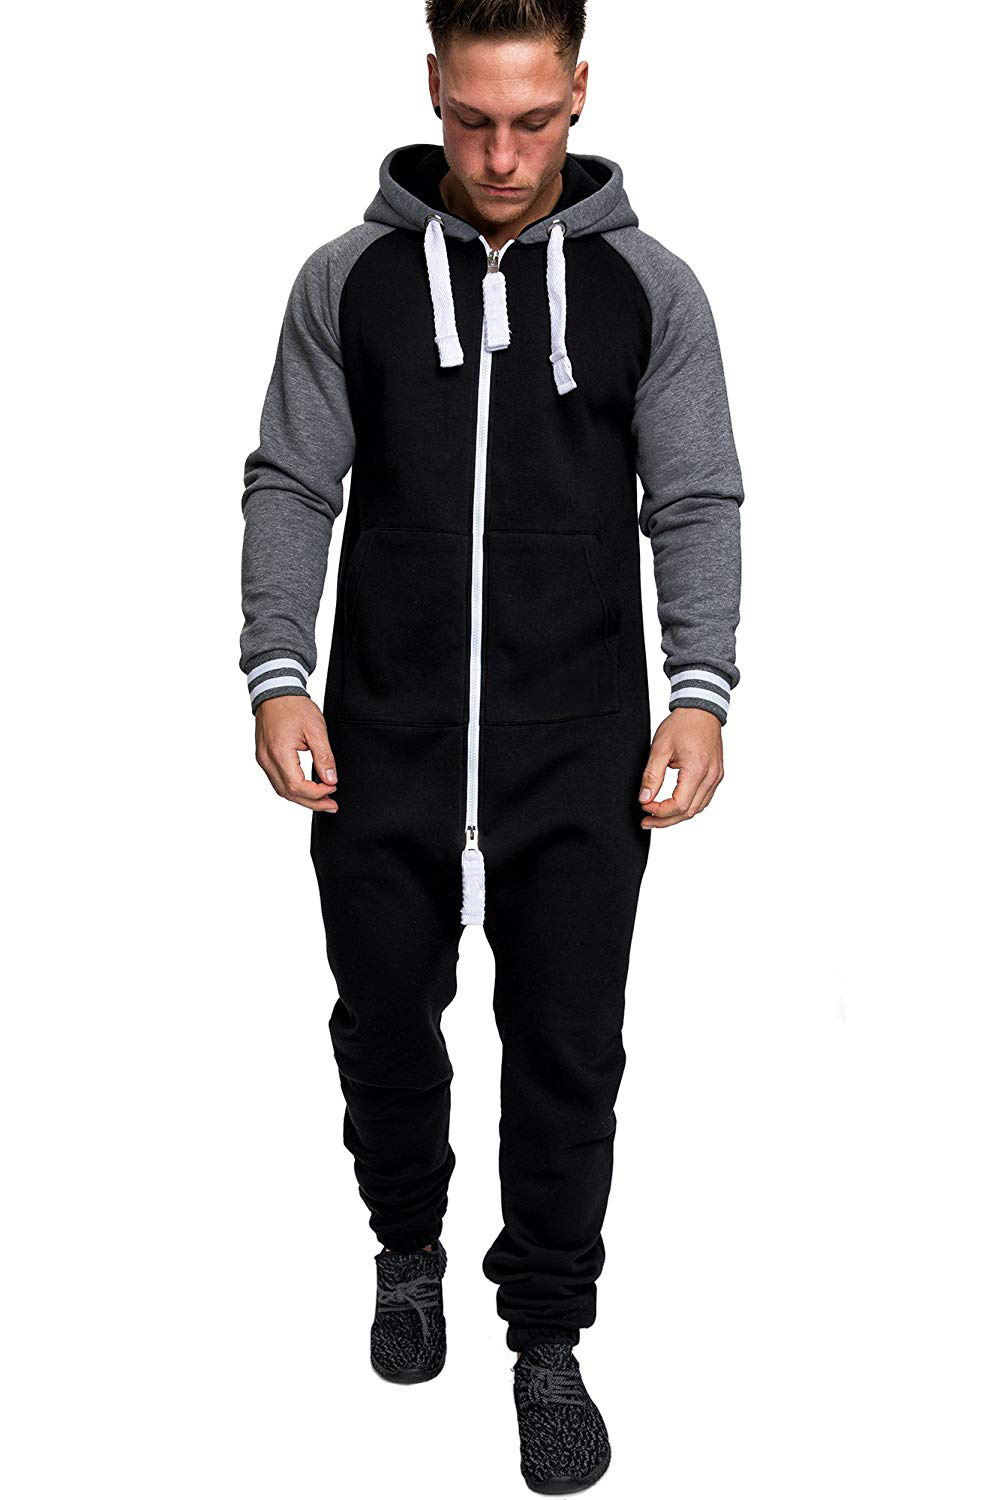 Casual Autumn Hooded Tracksuit Jumpsuit Long Pants Romper For Male Mens Fleece warm Overalls Sweatshirts Male Streetwear X9126 19